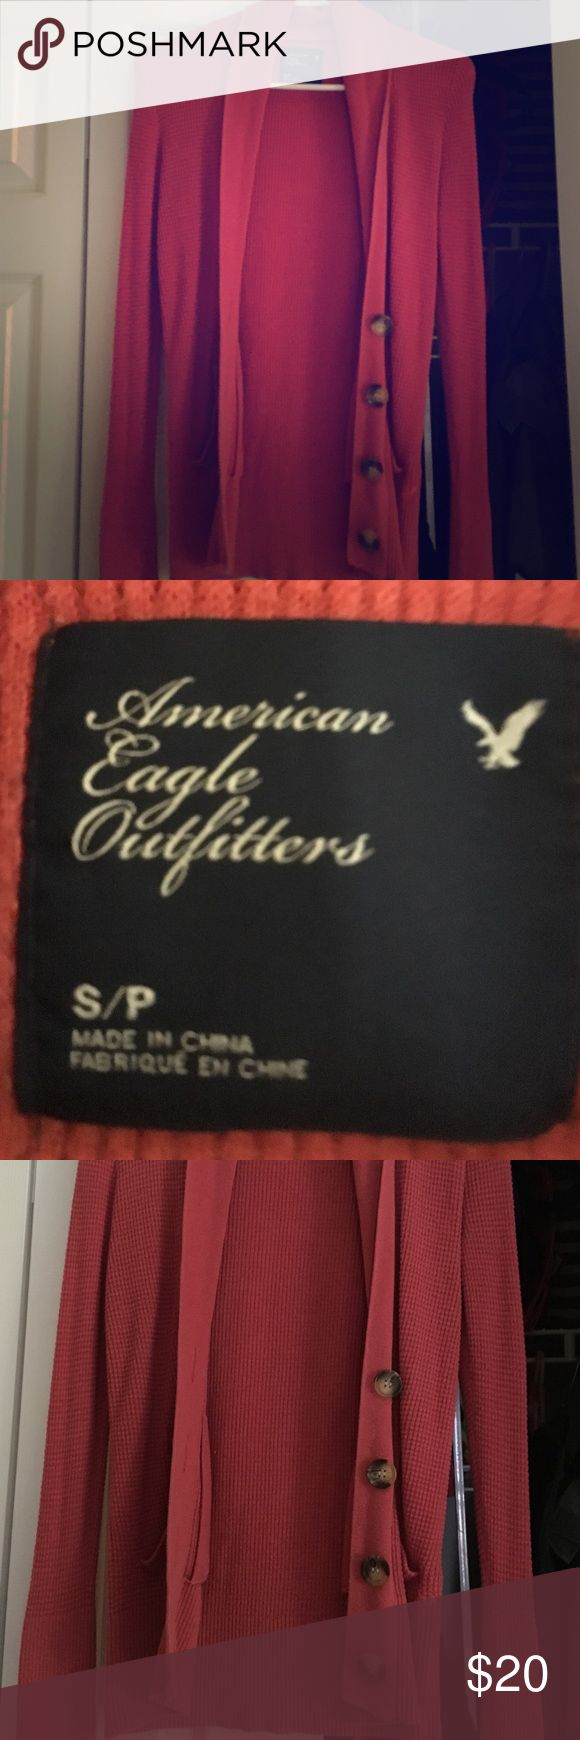 American eagle coral cardigan American eagle coral cardigan, great condition, size small American Eagle Outfitters Sweaters Cardigans